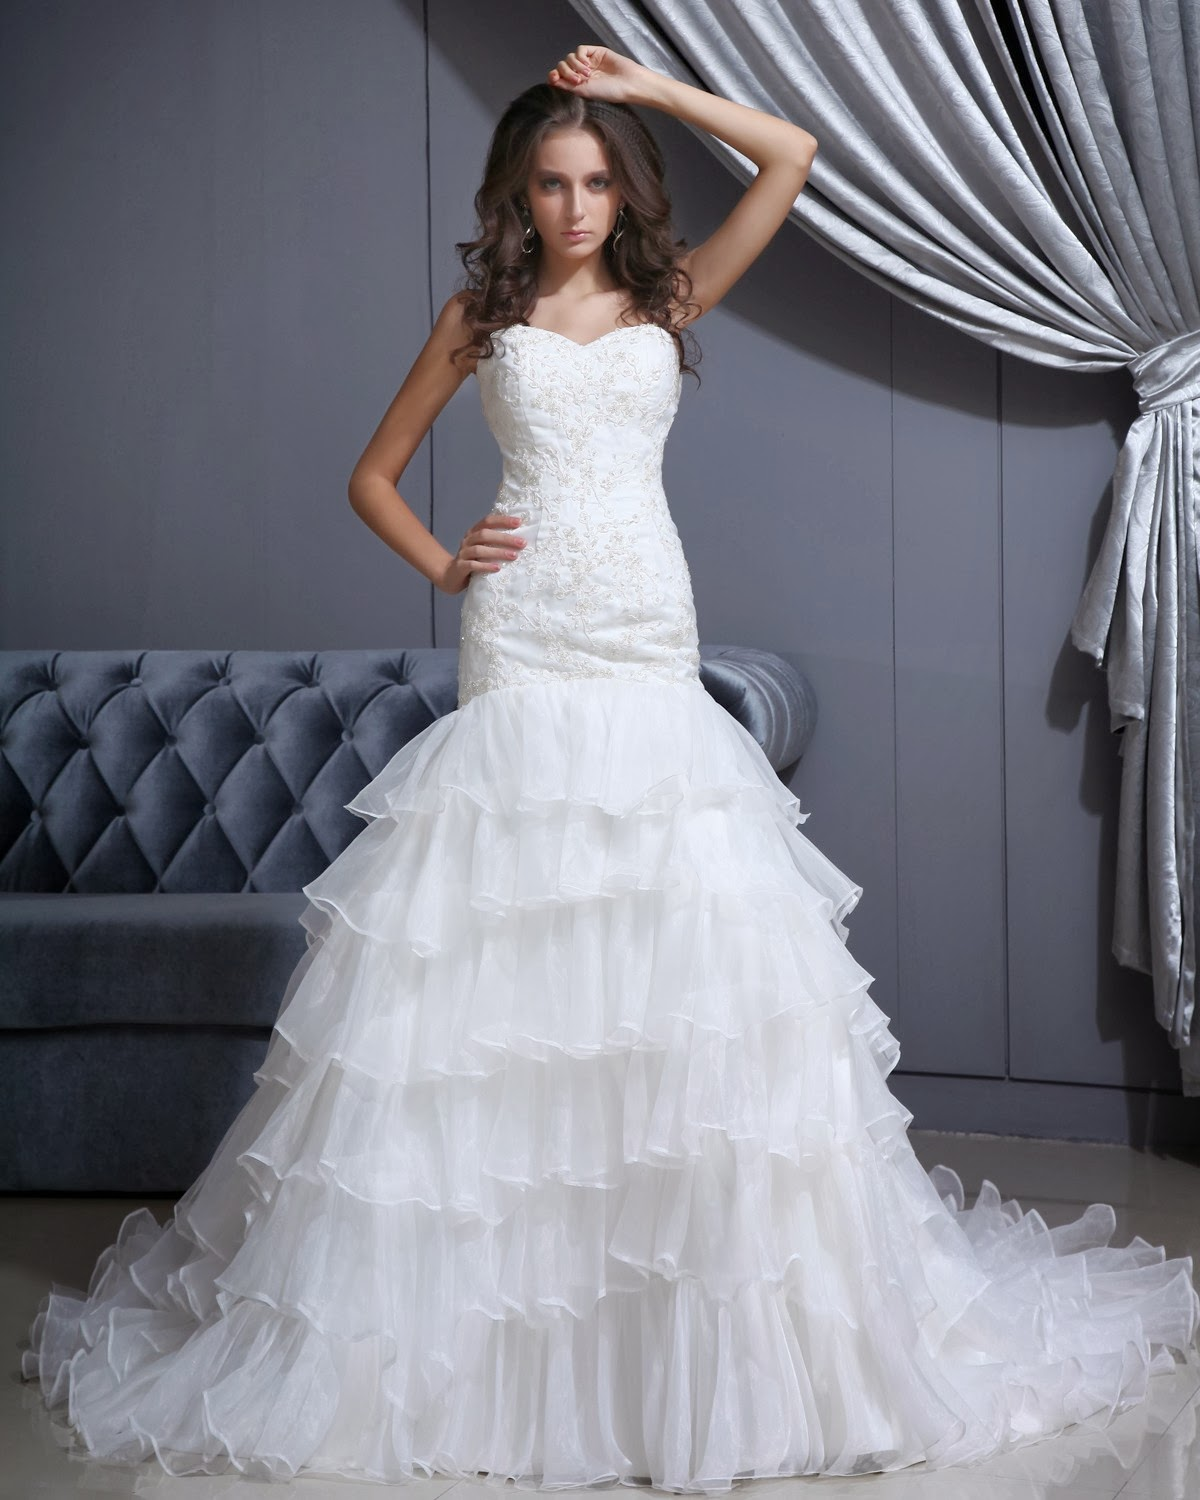 Affordable Wedding Gowns: Wedding Dress: Finding Discount Wedding Gowns Online